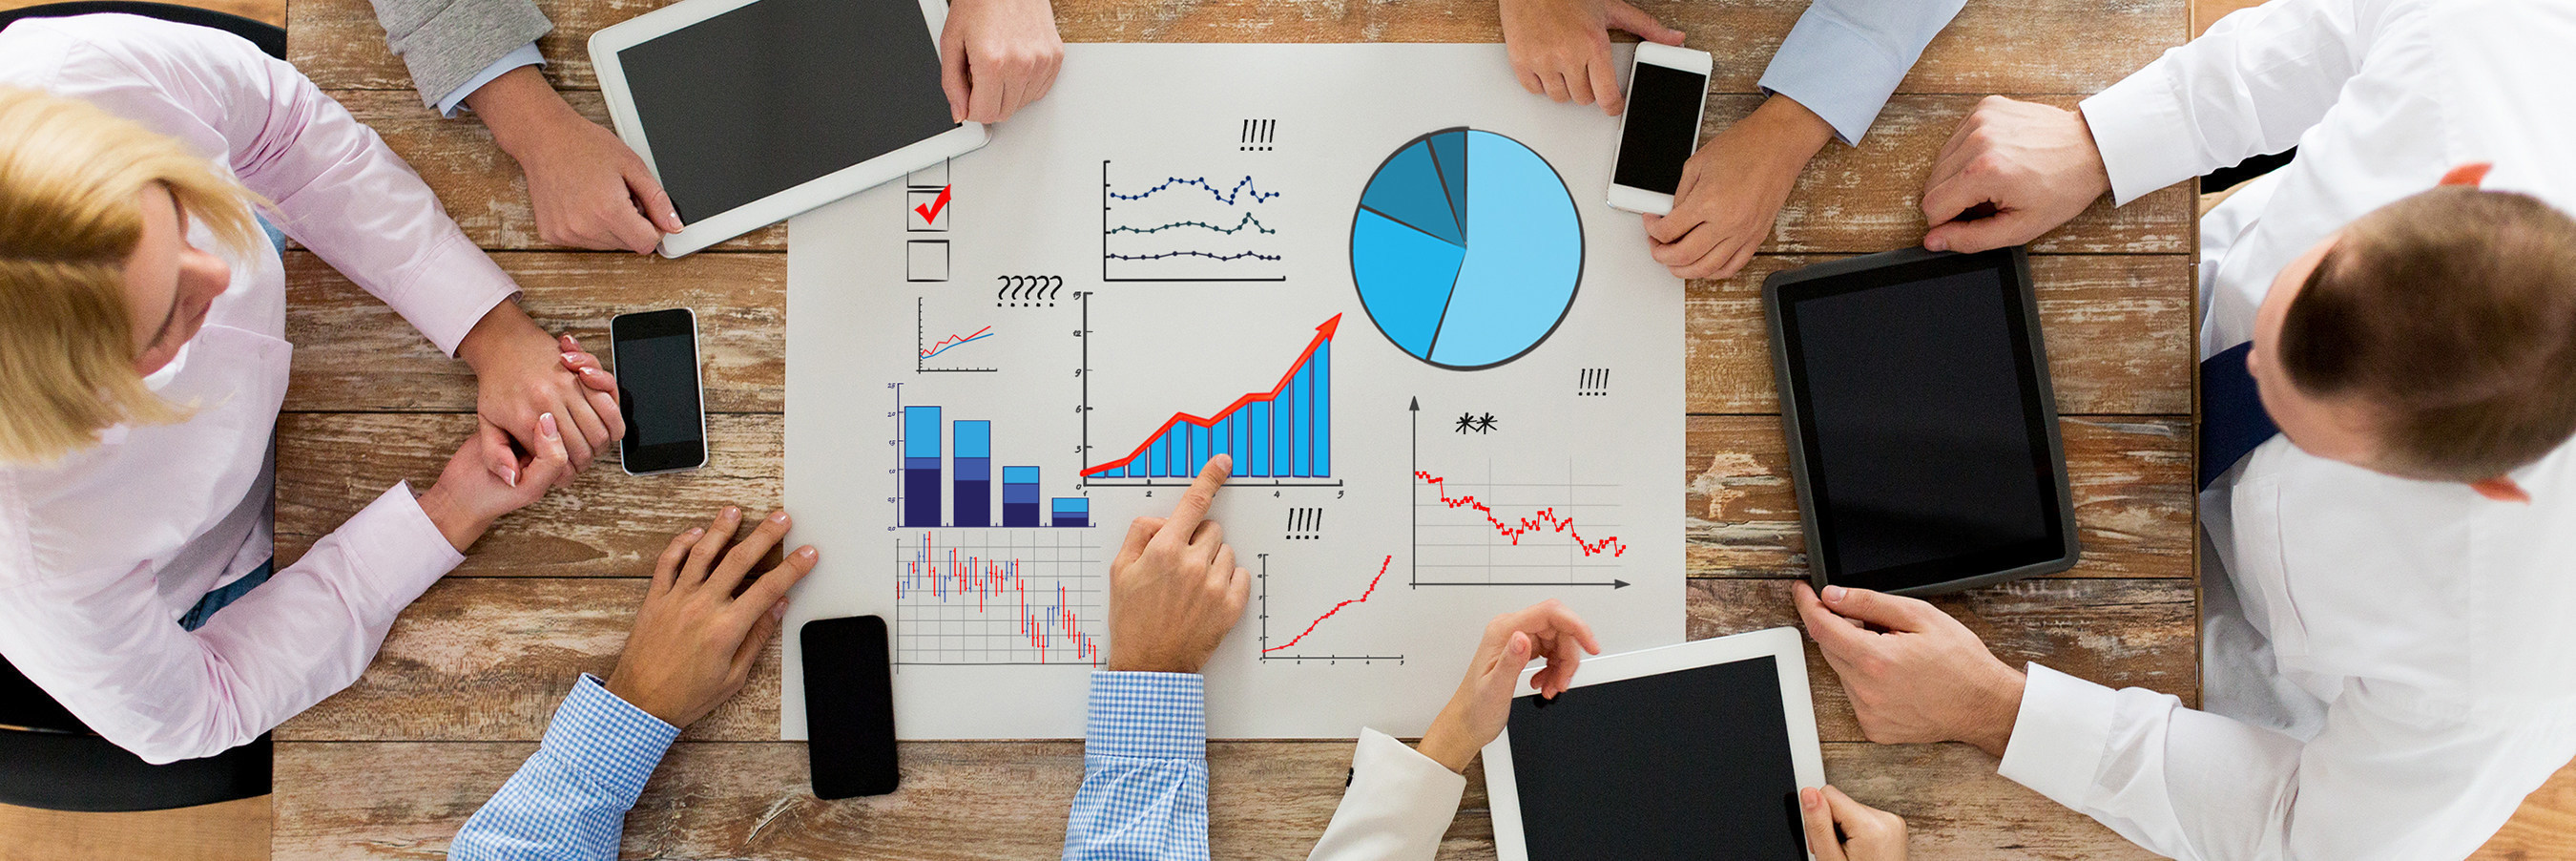 Enhance Your Operations With Advanced Analytics